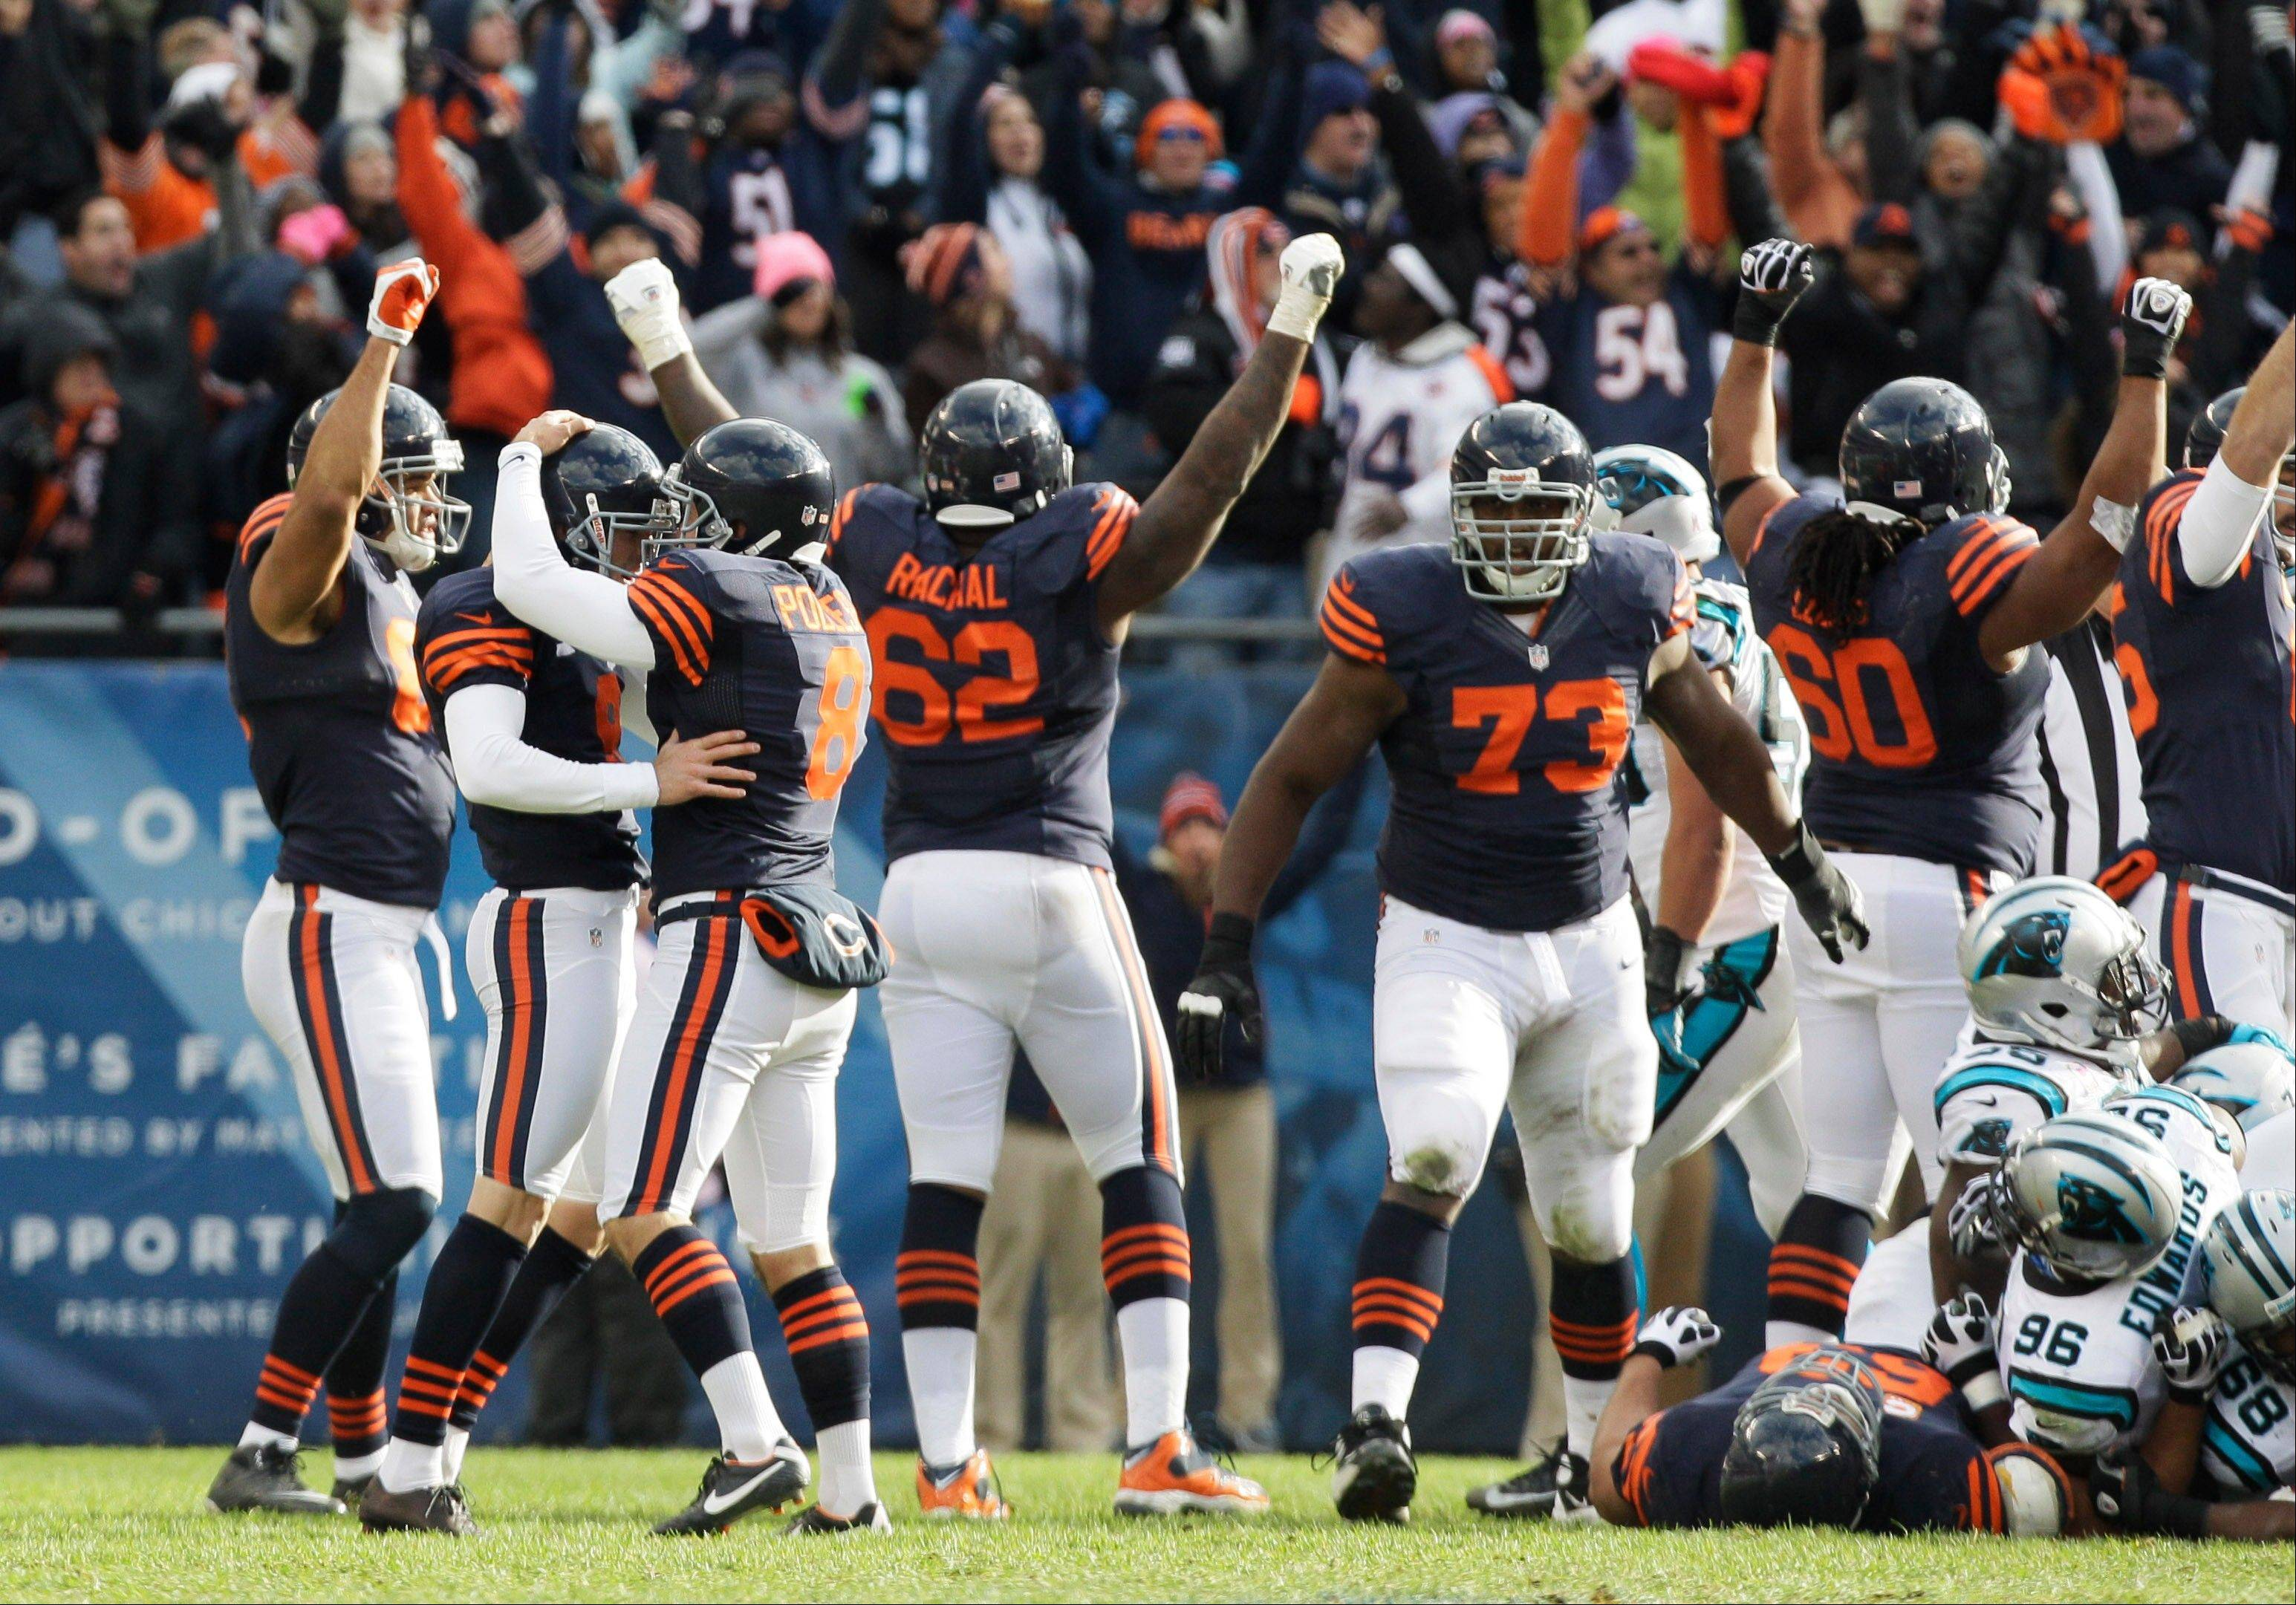 Chicago Bears kicker Robbie Gould (9), second from left, is congratulated by holder Adam Podlesh (8) after Gould kicked a game-winning, 41-yard field goal in the closing seconds to beat the Carolina Panthers 23-22.